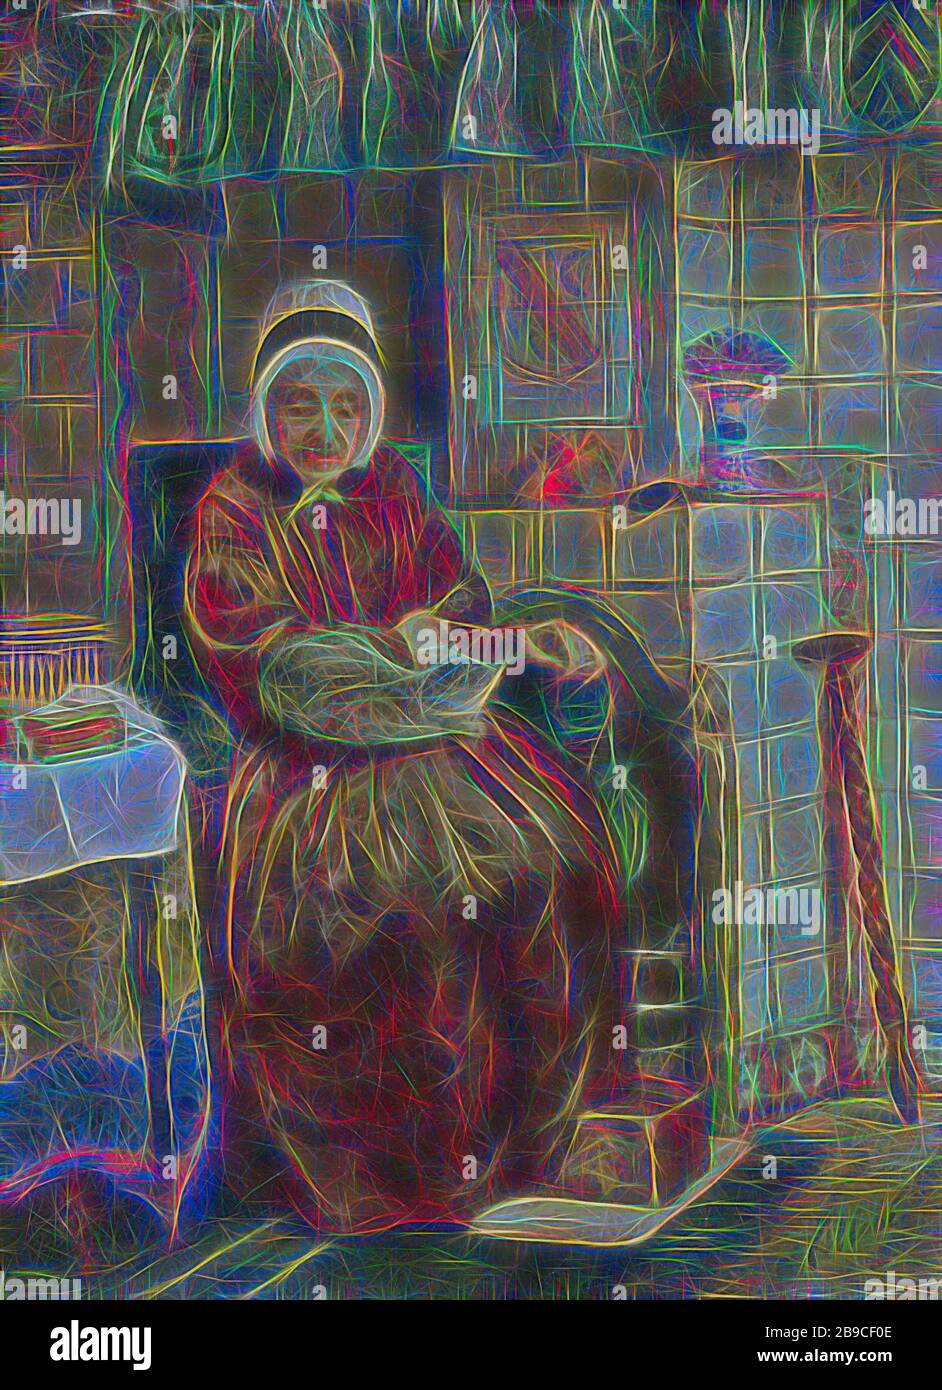 Old Woman By The Fireplace Old Woman Sitting By The Fireplace With A Cat On Her Lap And Feet On A Stove Kitchen Old Woman Warming Oneself At A Fire Or Hearth